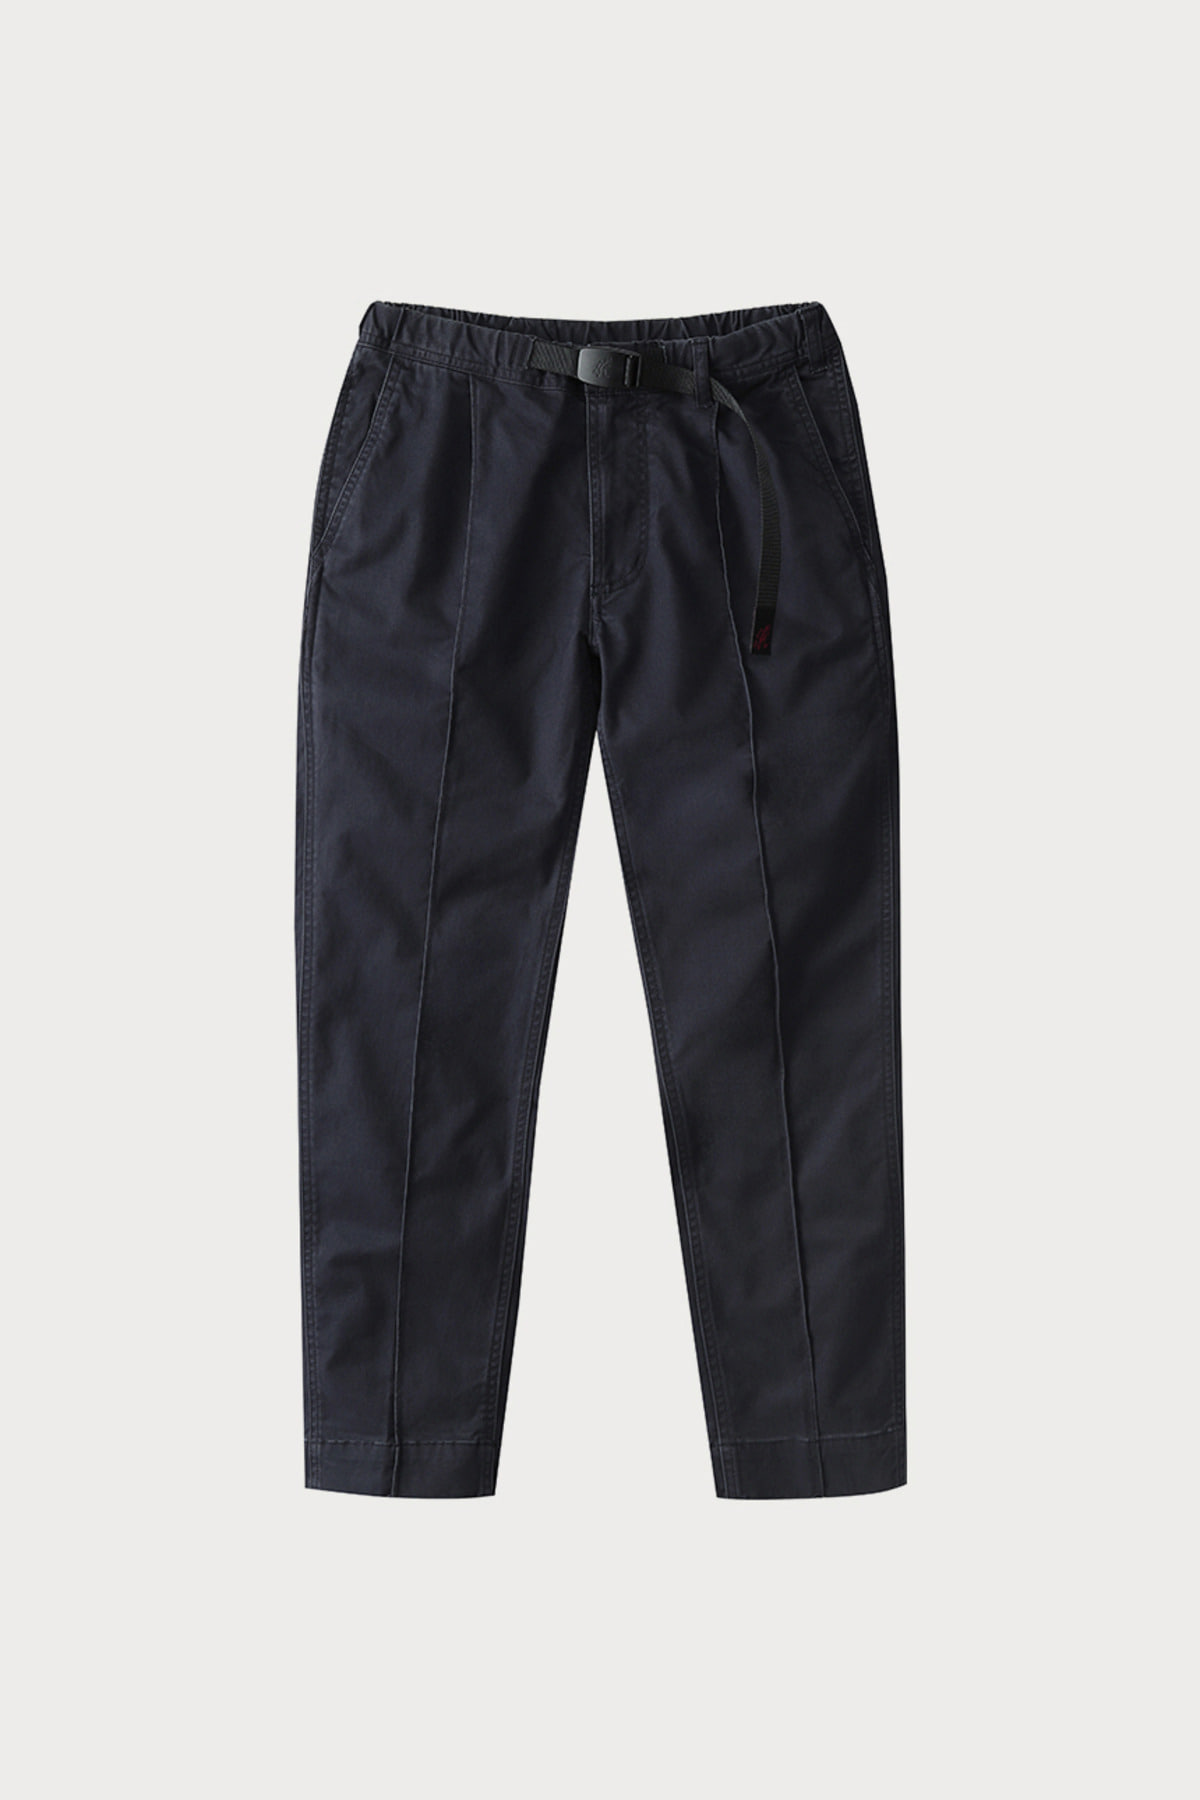 PINTUCK PANTS DOUBLE NAVY